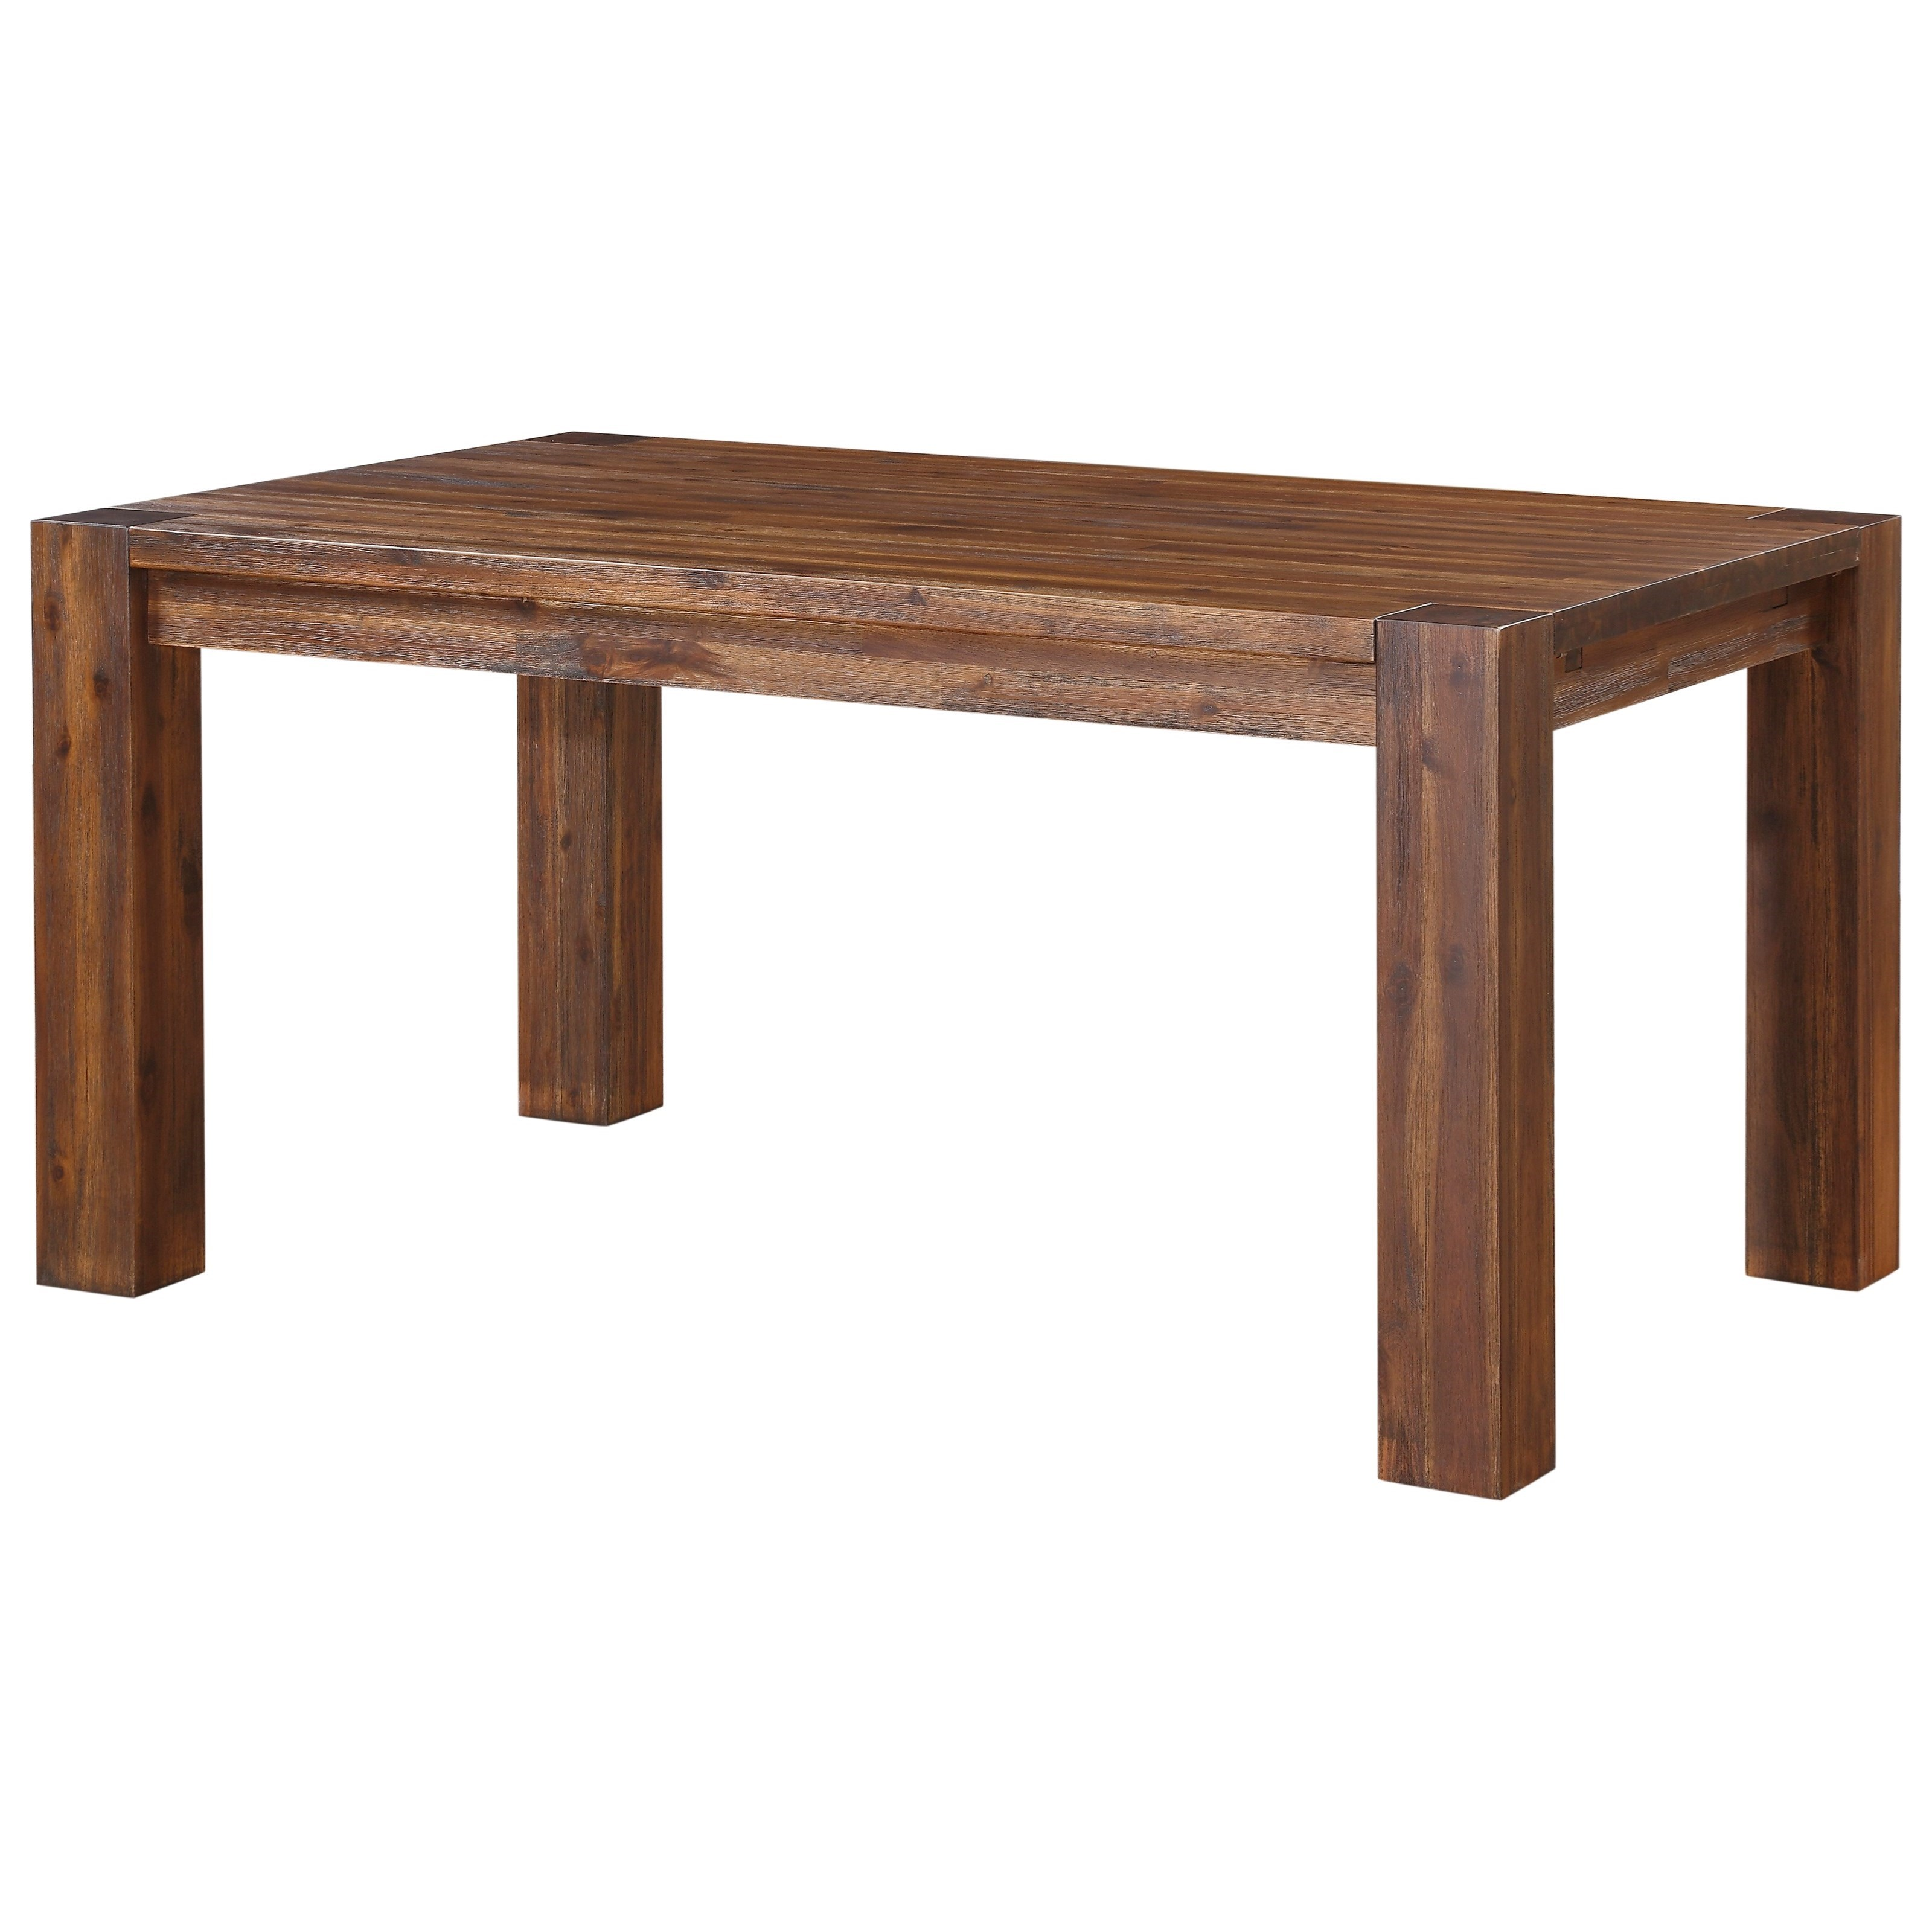 Modus international meadow dining rectangle dining table for Rectangular dining room tables with leaves